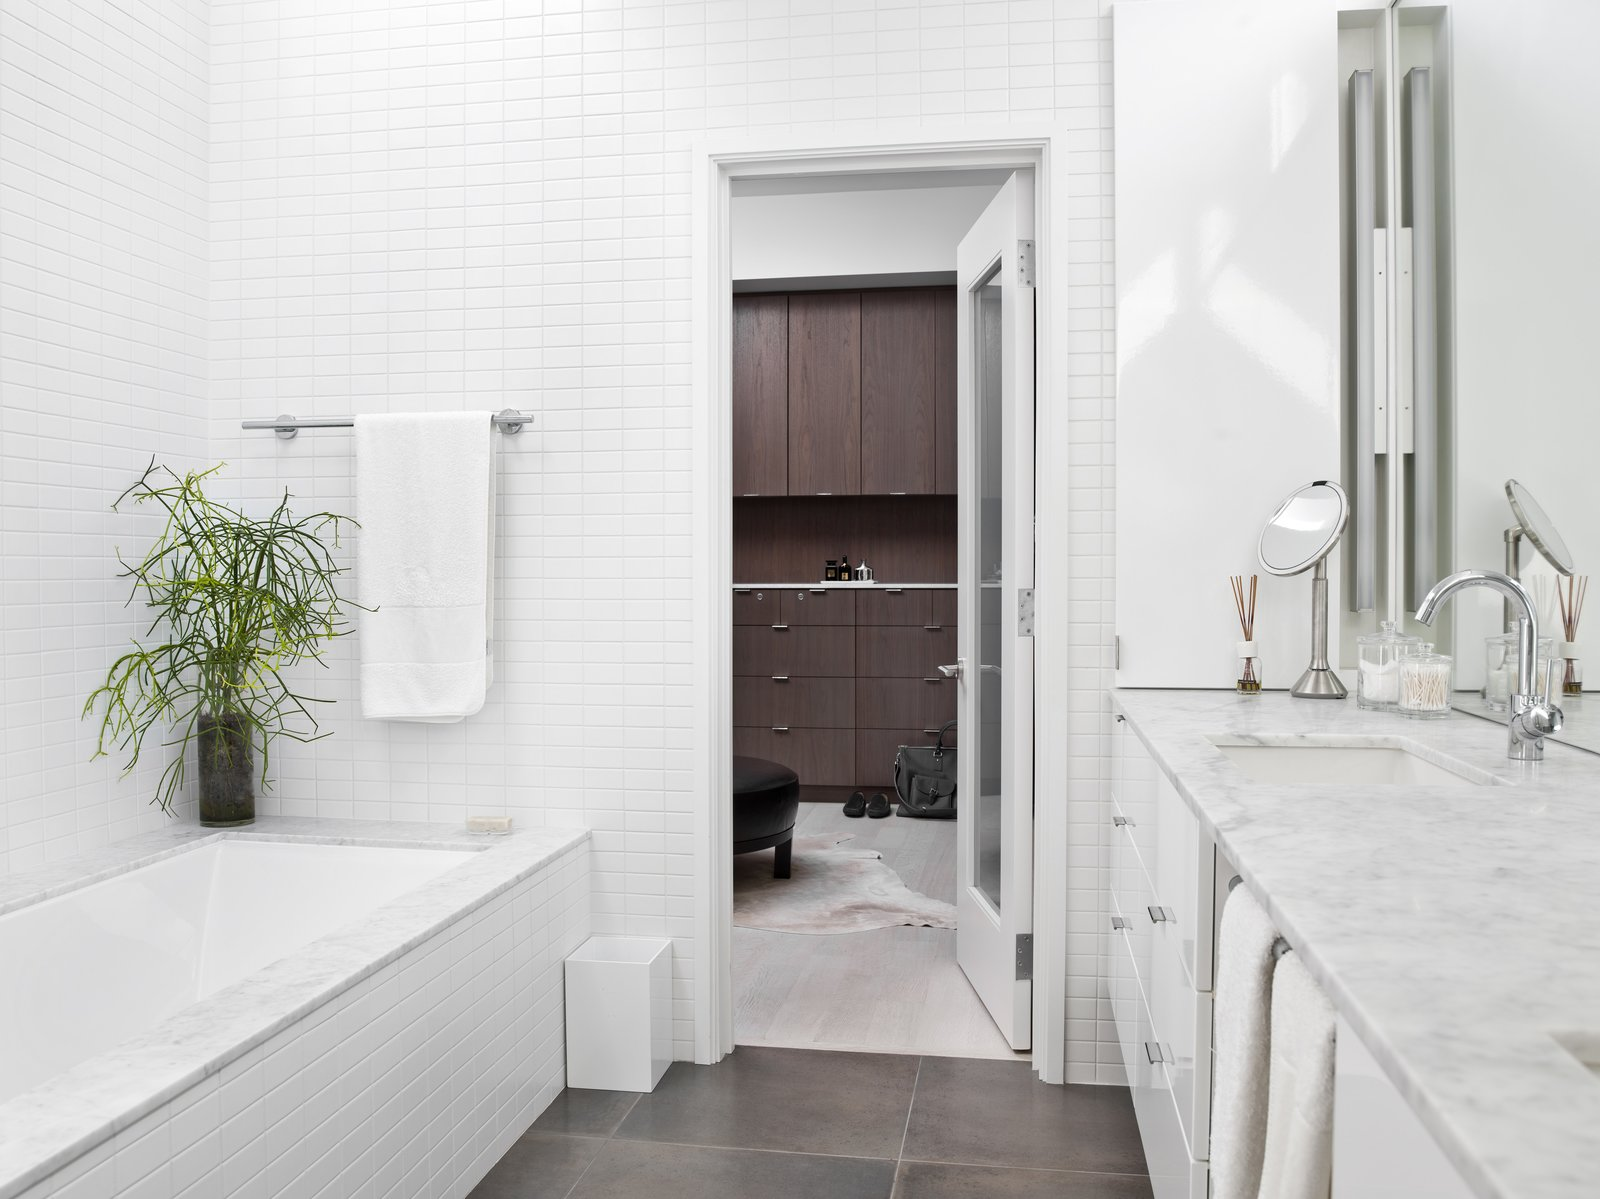 Bath, Porcelain Tile, Undermount, Alcove, Wall, Undermount, Ceramic Tile, Whirlpool, and Marble  Best Bath Porcelain Tile Alcove Photos from Eastwood Residence